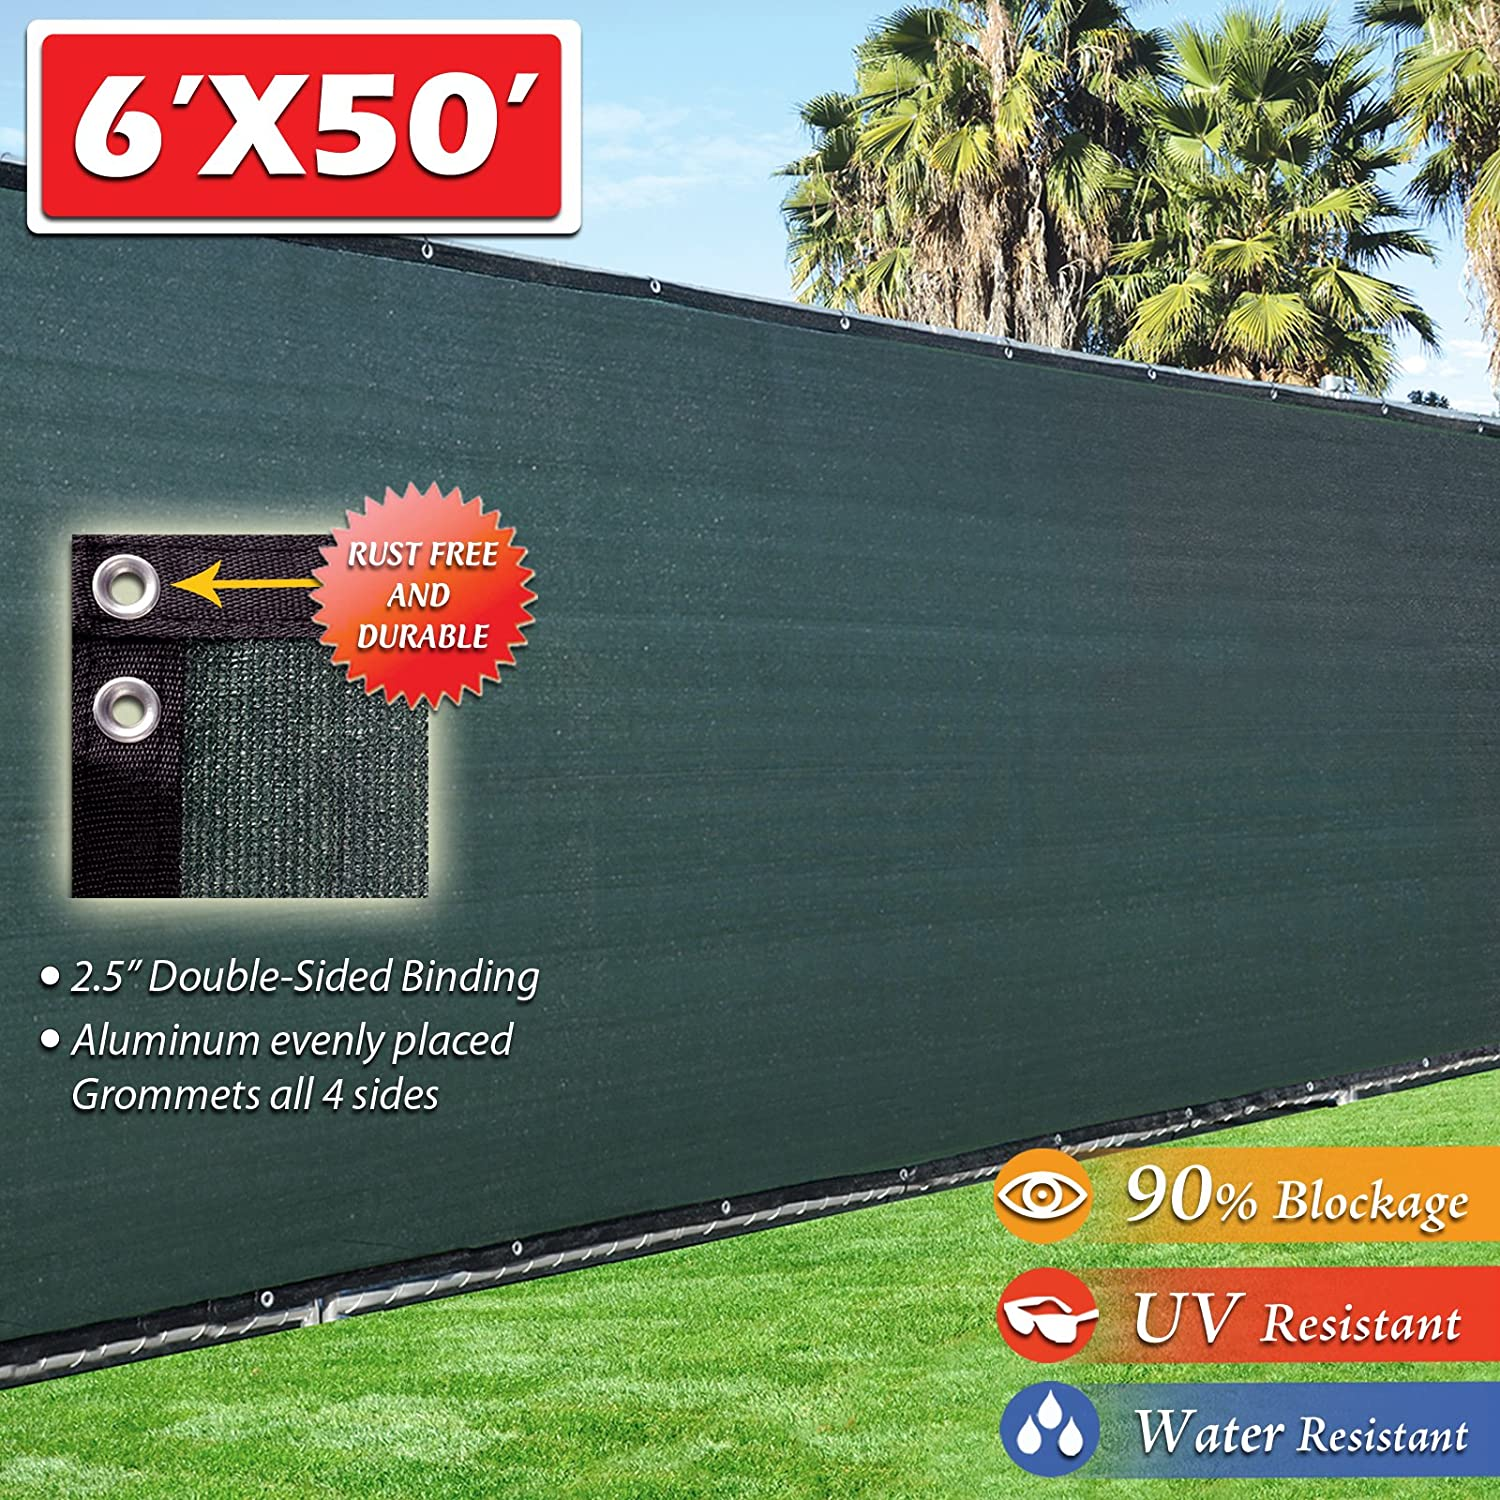 Fence4ever 6' x 50' 3rd Gen Olive Dark Green Fence Privacy Screen Windscreen Shade Fabric Mesh Netting Tarp (Aluminum Grommets) VC0S2_F4E-G650FS-A-88